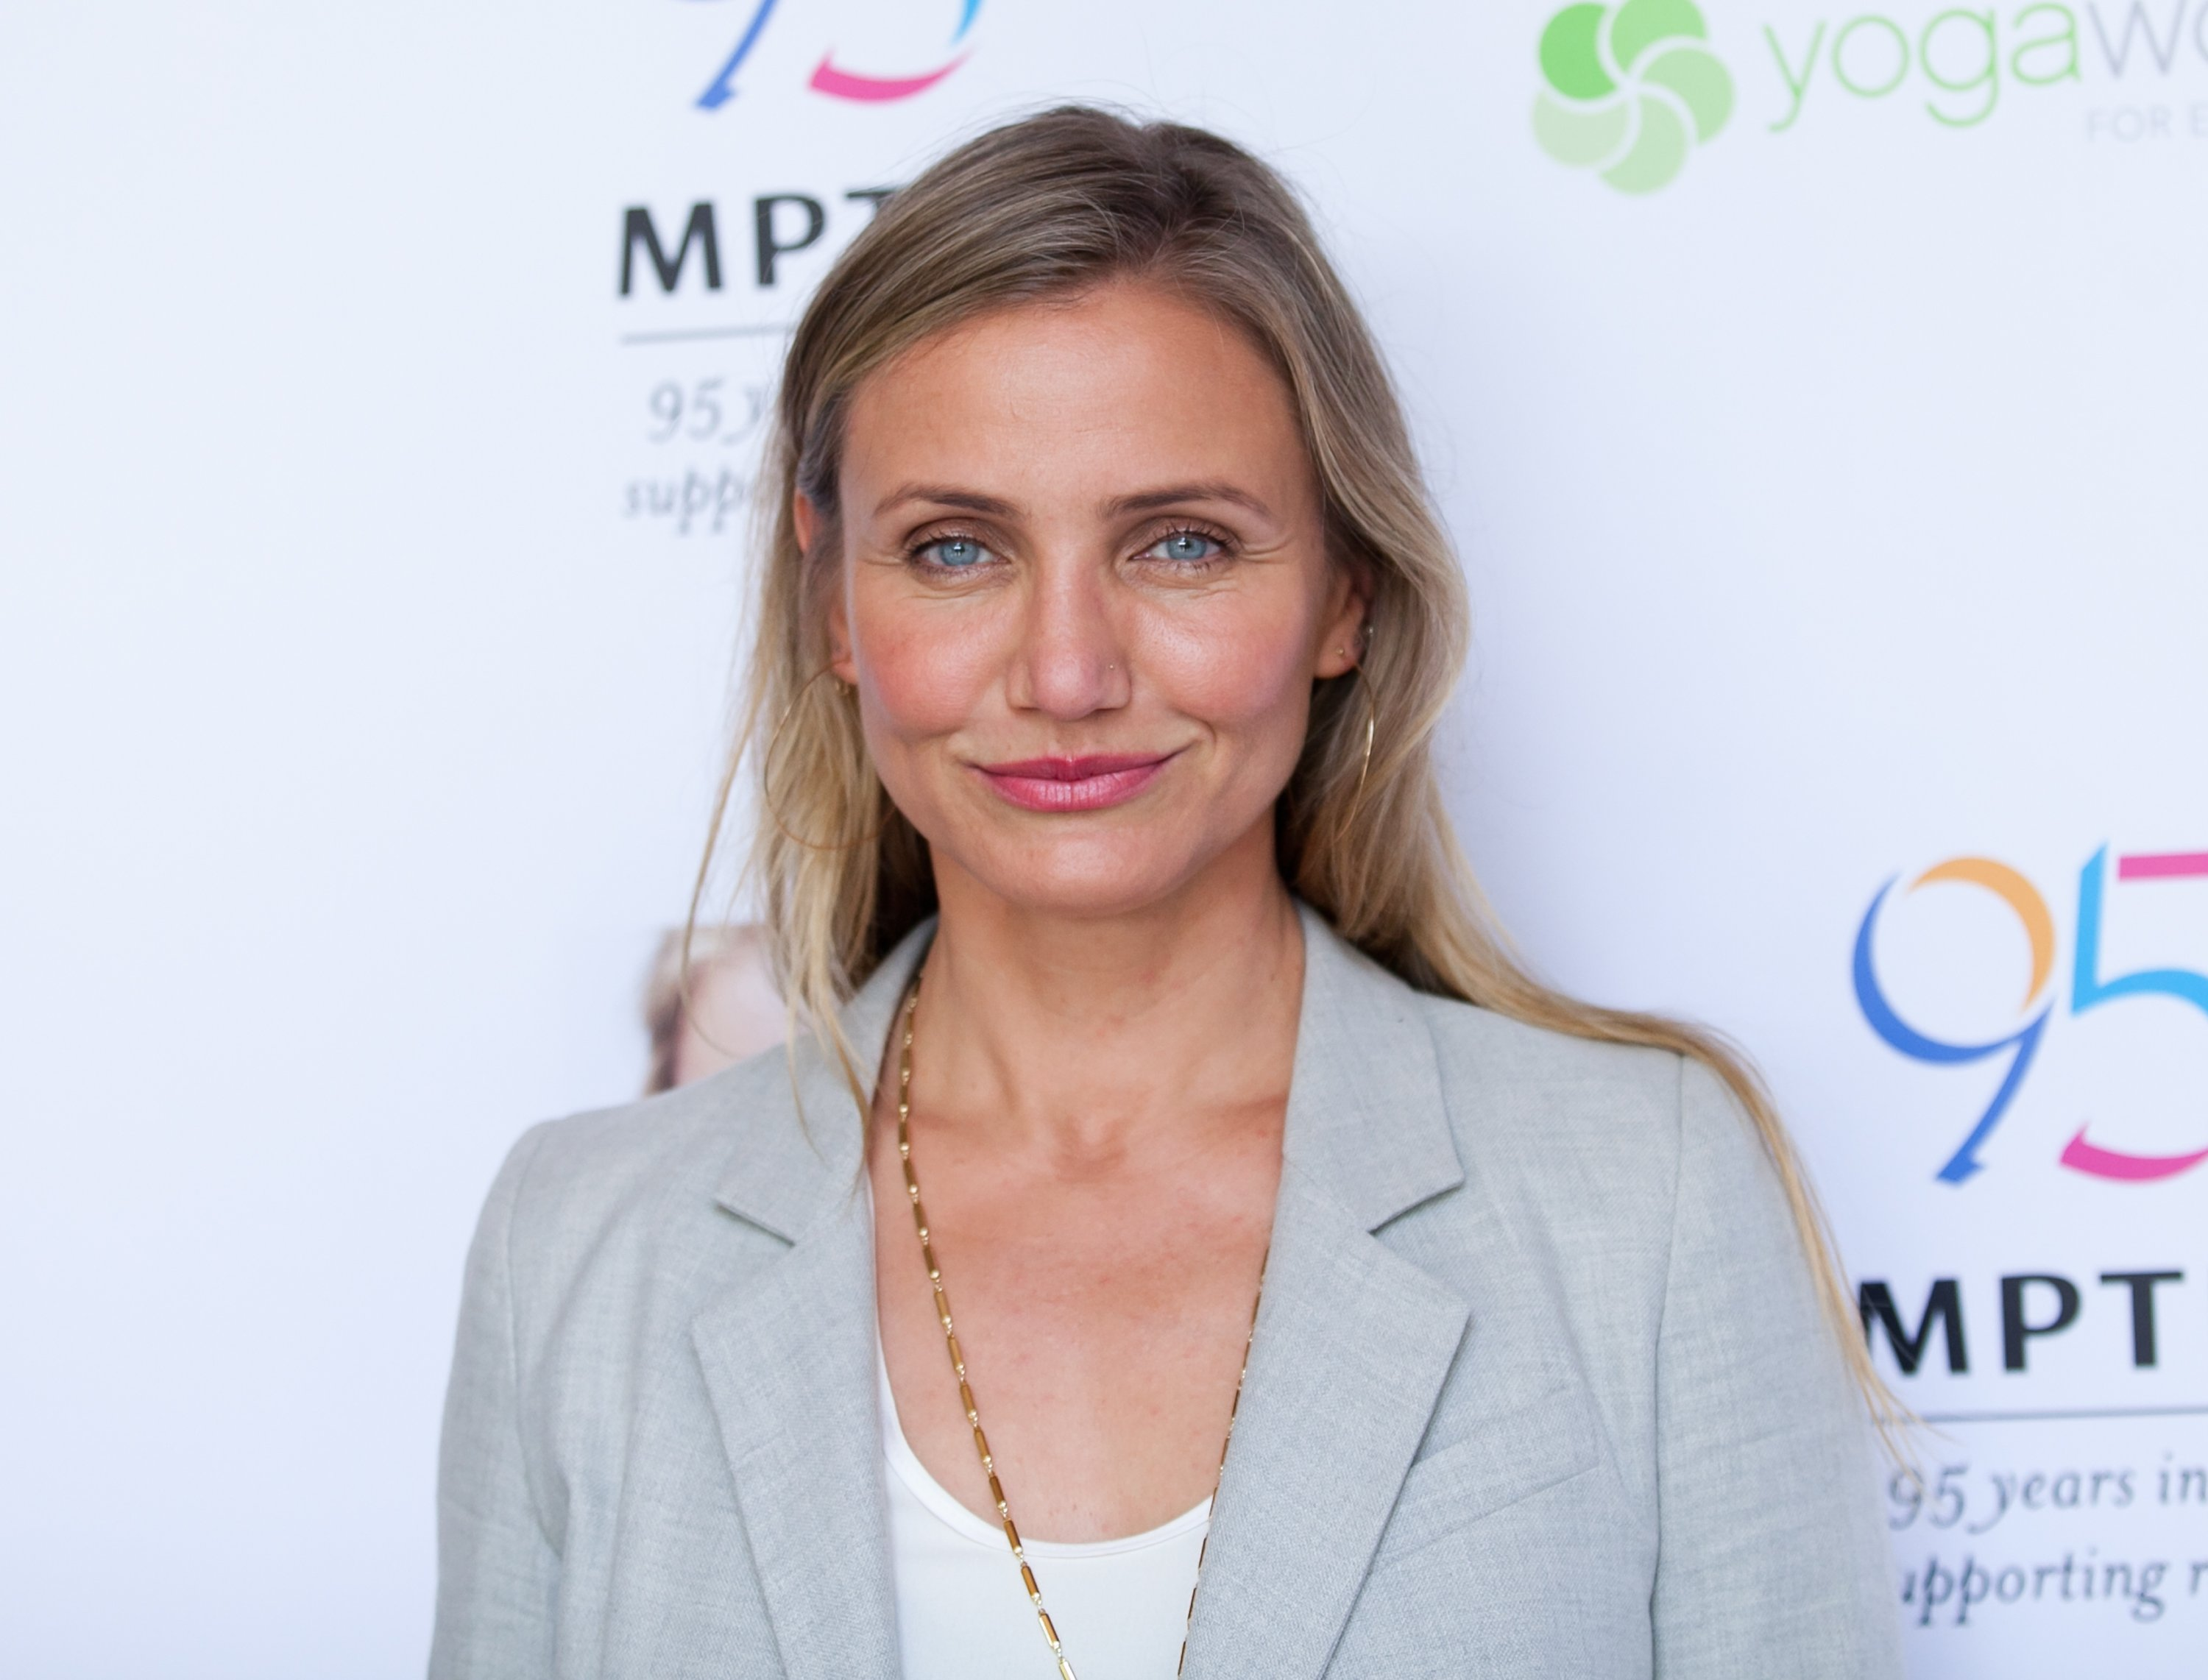 Source: Getty Images / Cameron Diaz attends the MPTF Celebration for health and fitness at The Wasserman Campus on June 10, 2016 in Woodland Hills, California